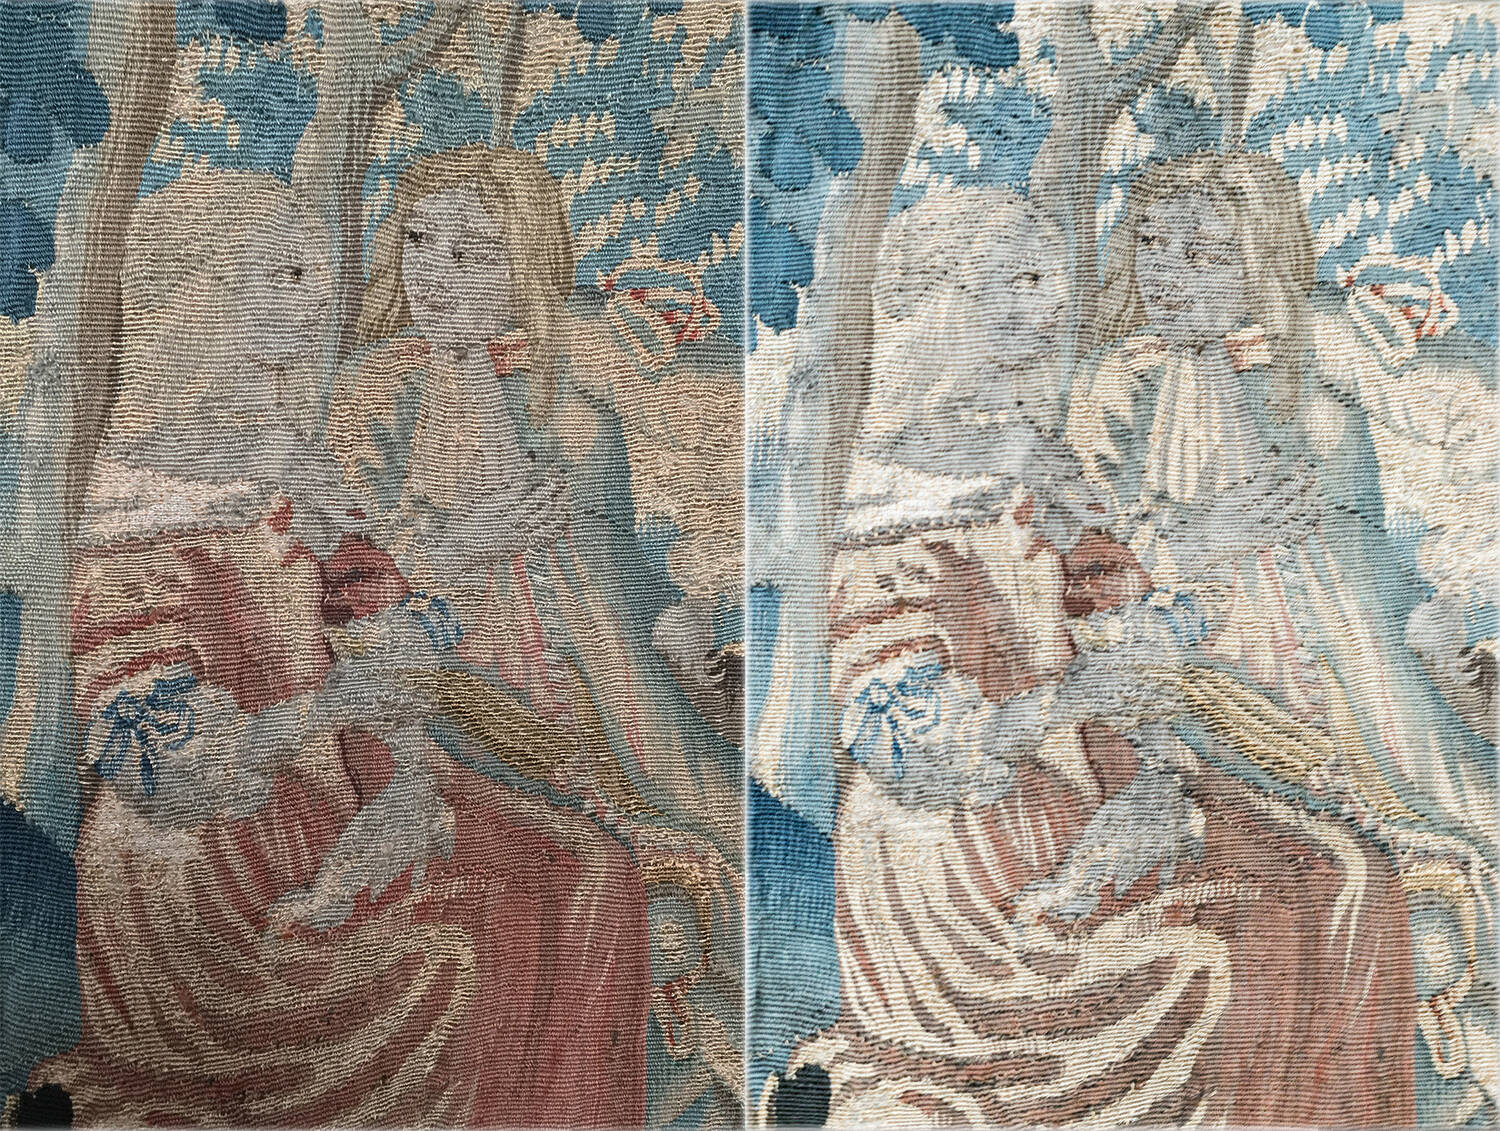 Detail showing two lovers in a forest before and after cleaning